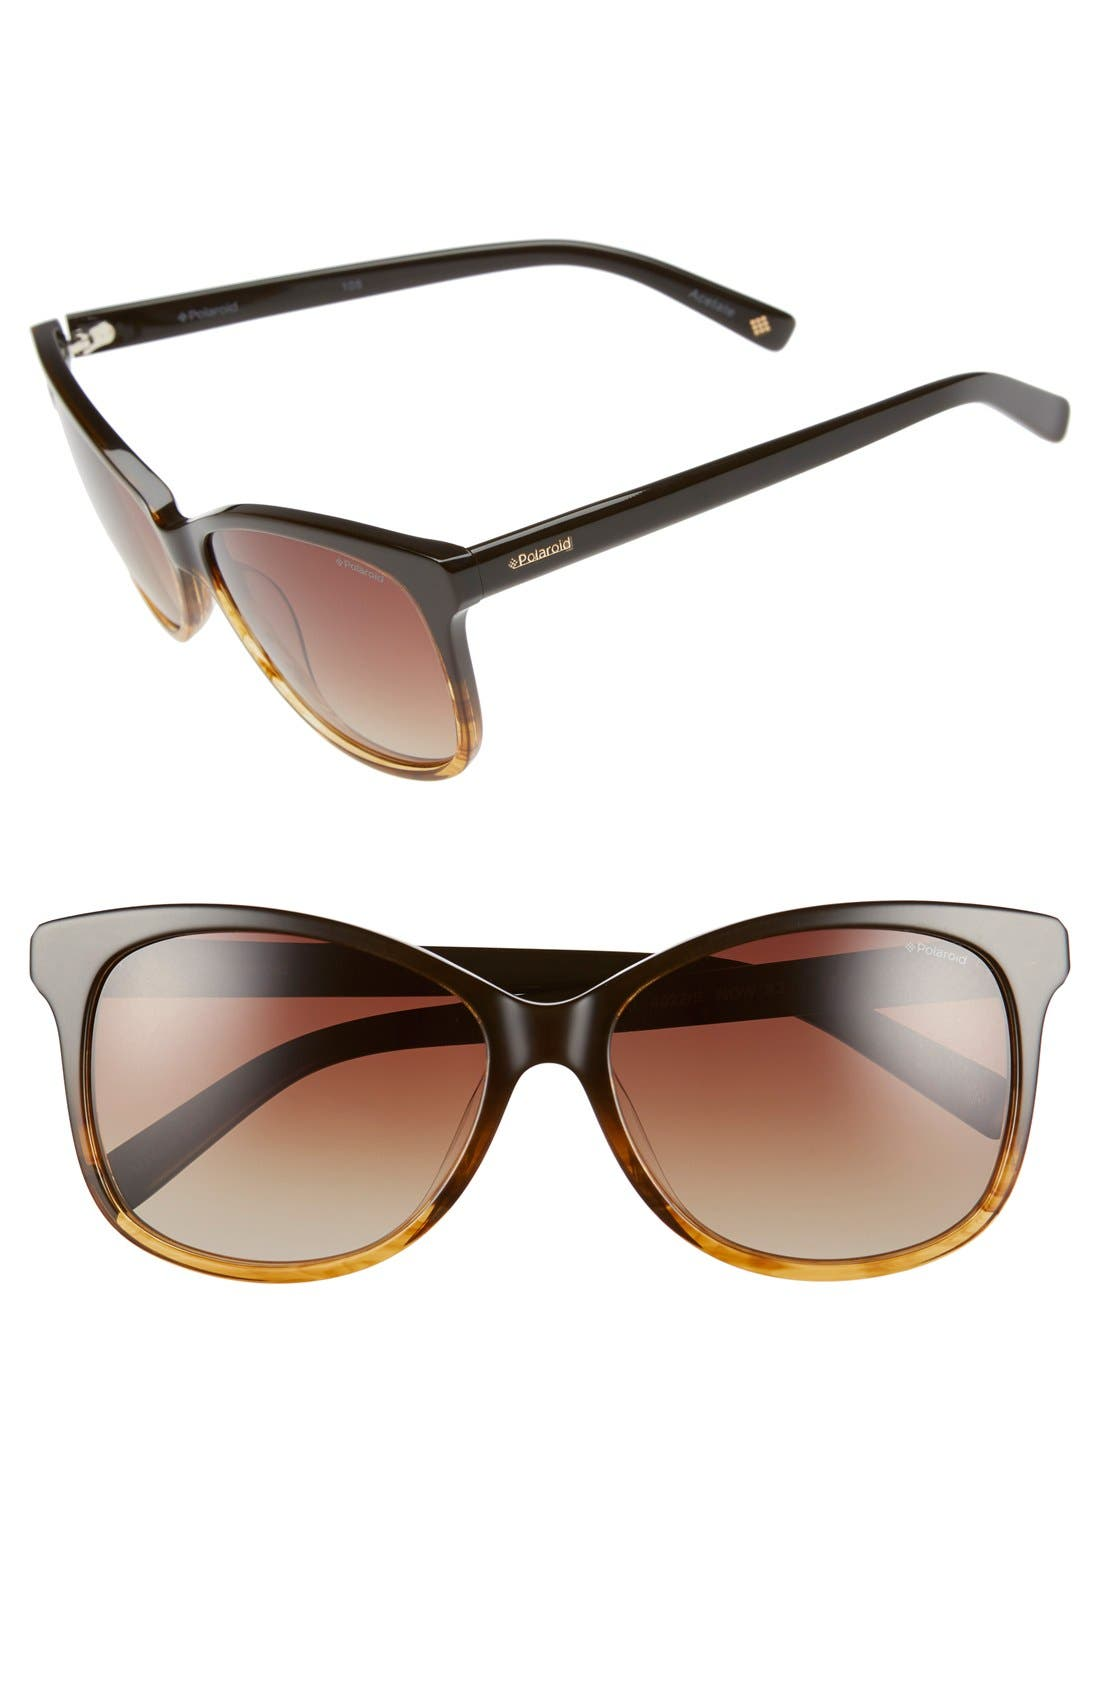 57mm Polarized Cat Eye Sunglasses,                         Main,                         color, 200